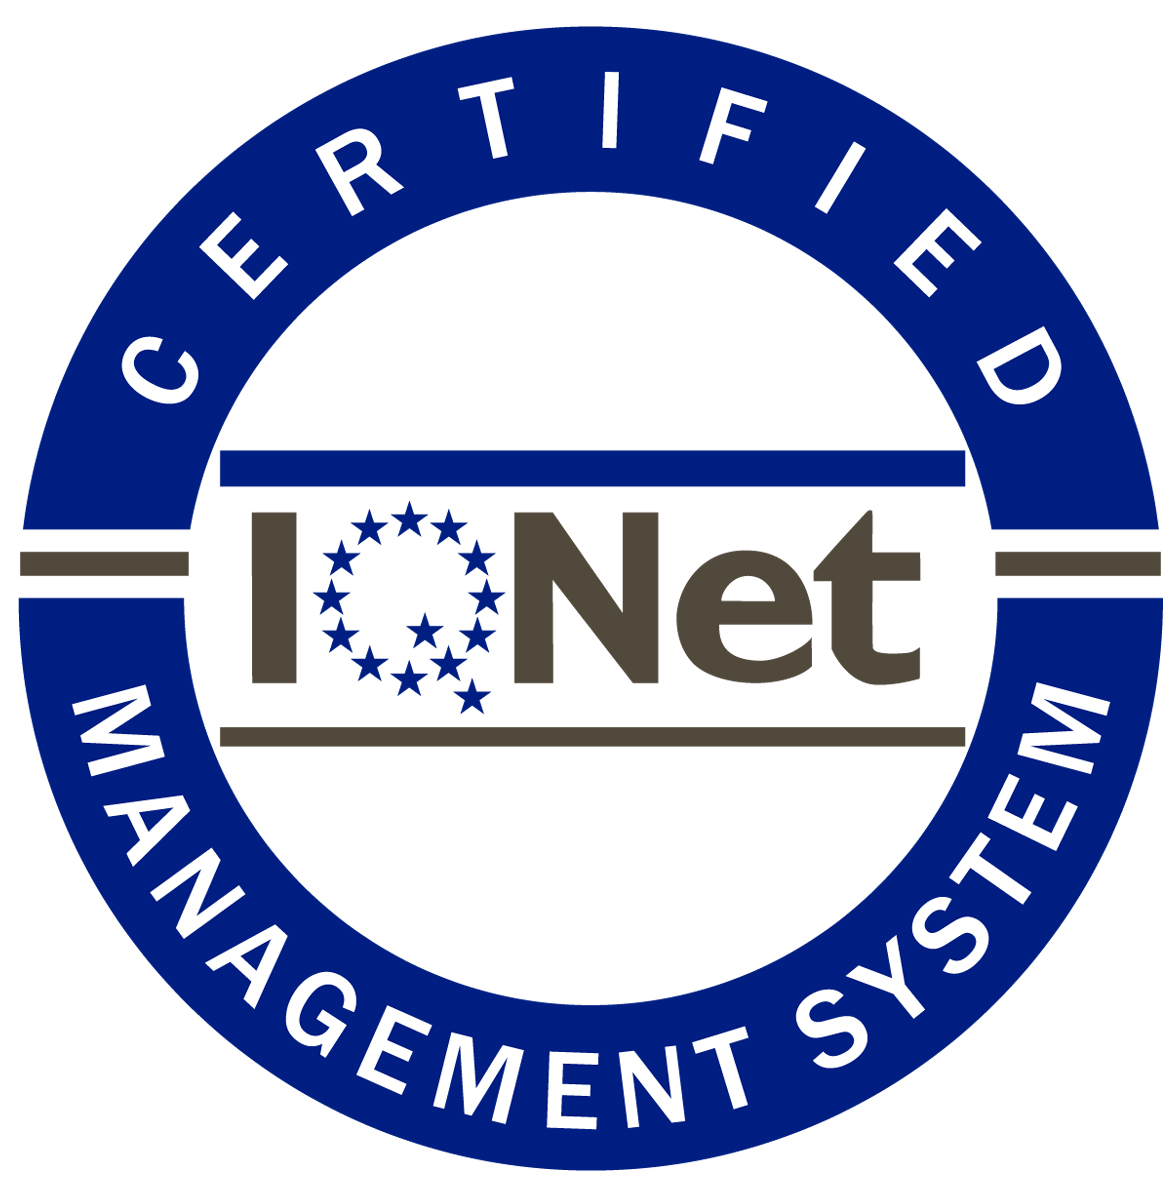 IQNet-certification-mark1